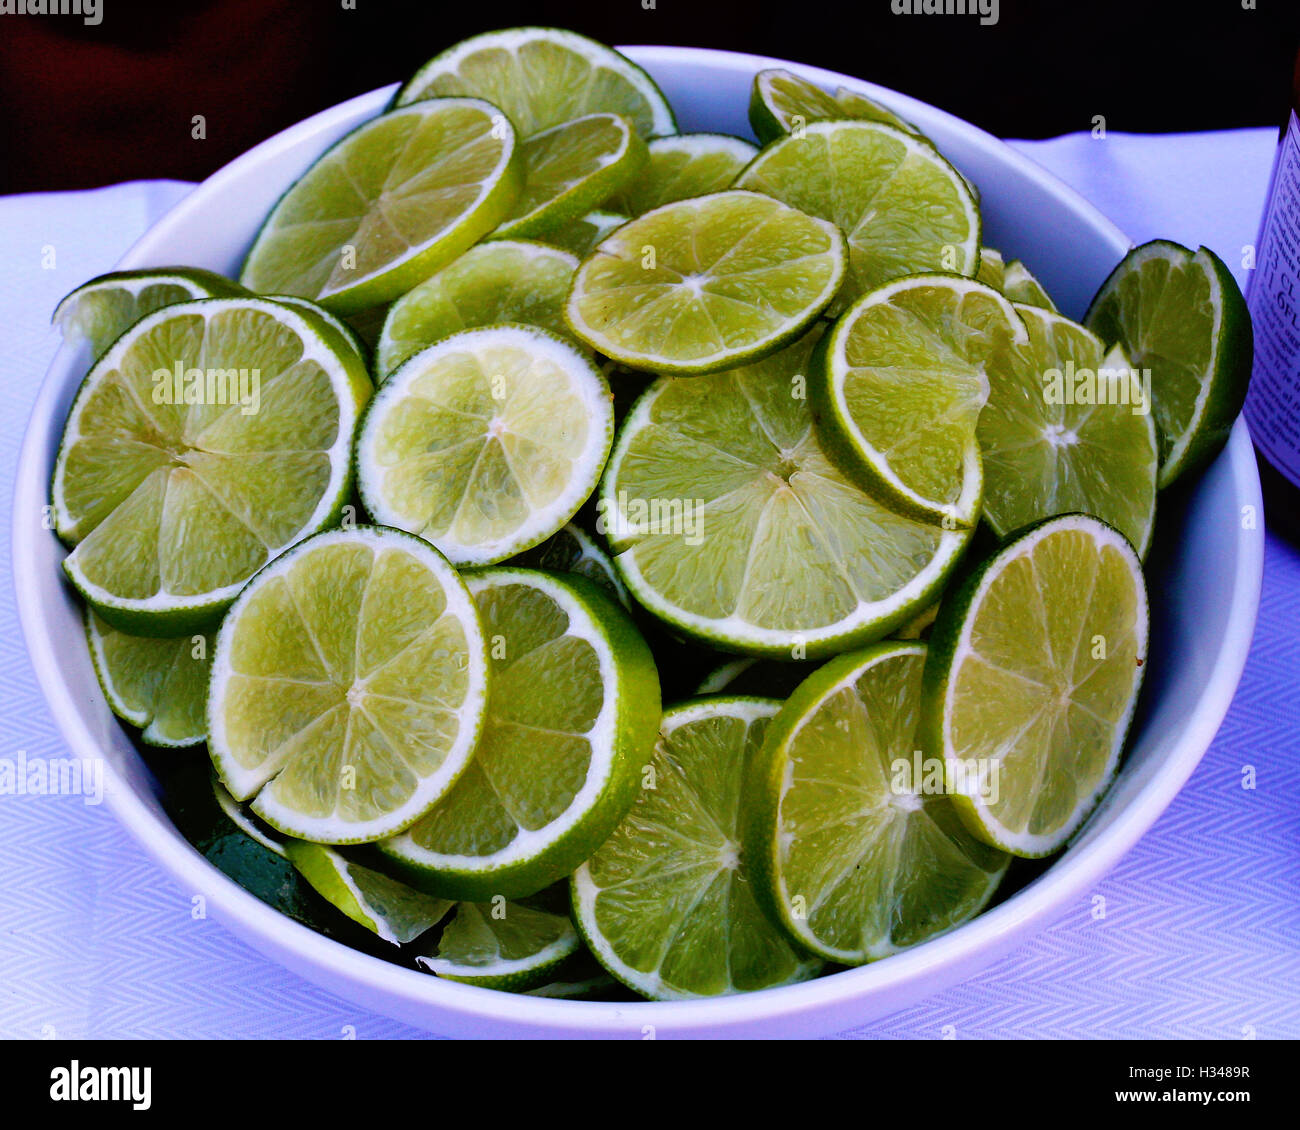 Limes in a bowl. Sliced and ready for BBQ and cocktails - Stock Image